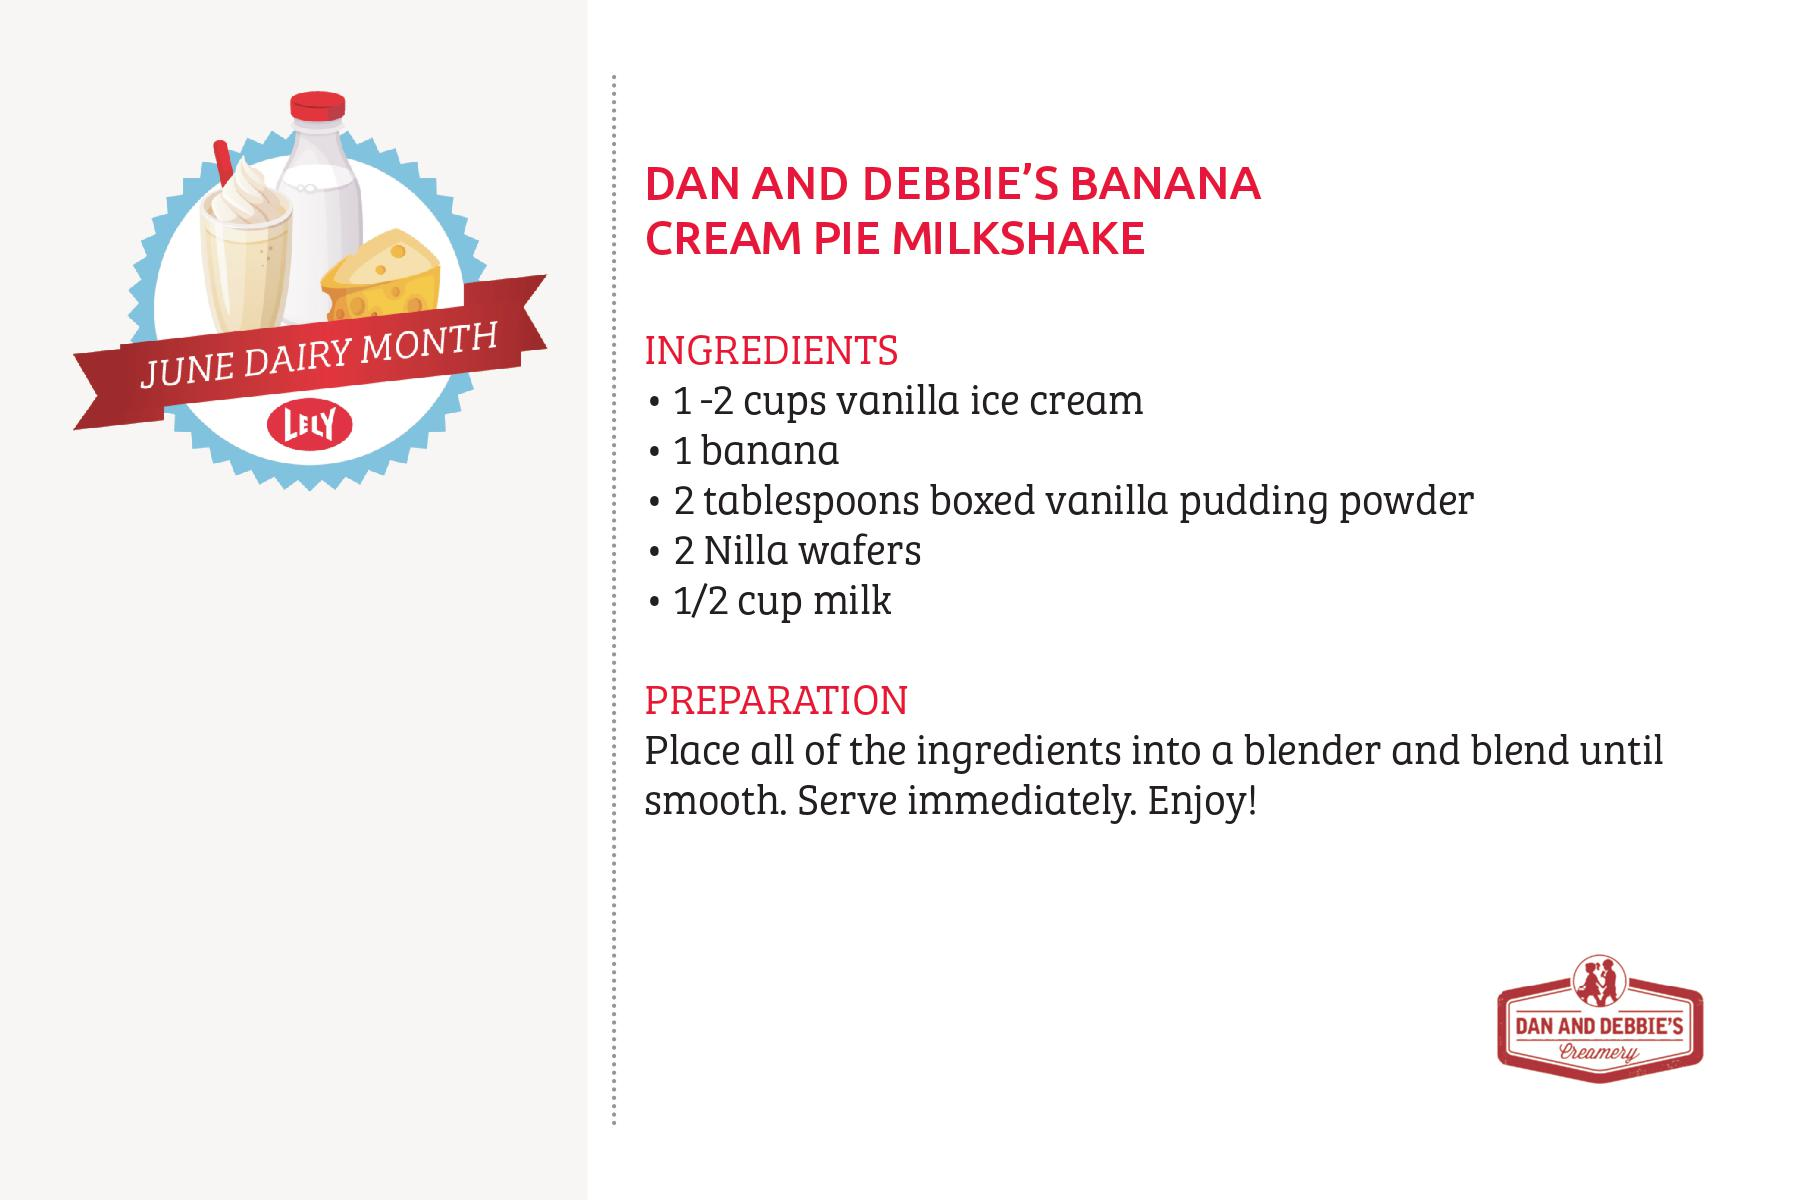 Dan and Debbies Banana Cream Pie Milkshake